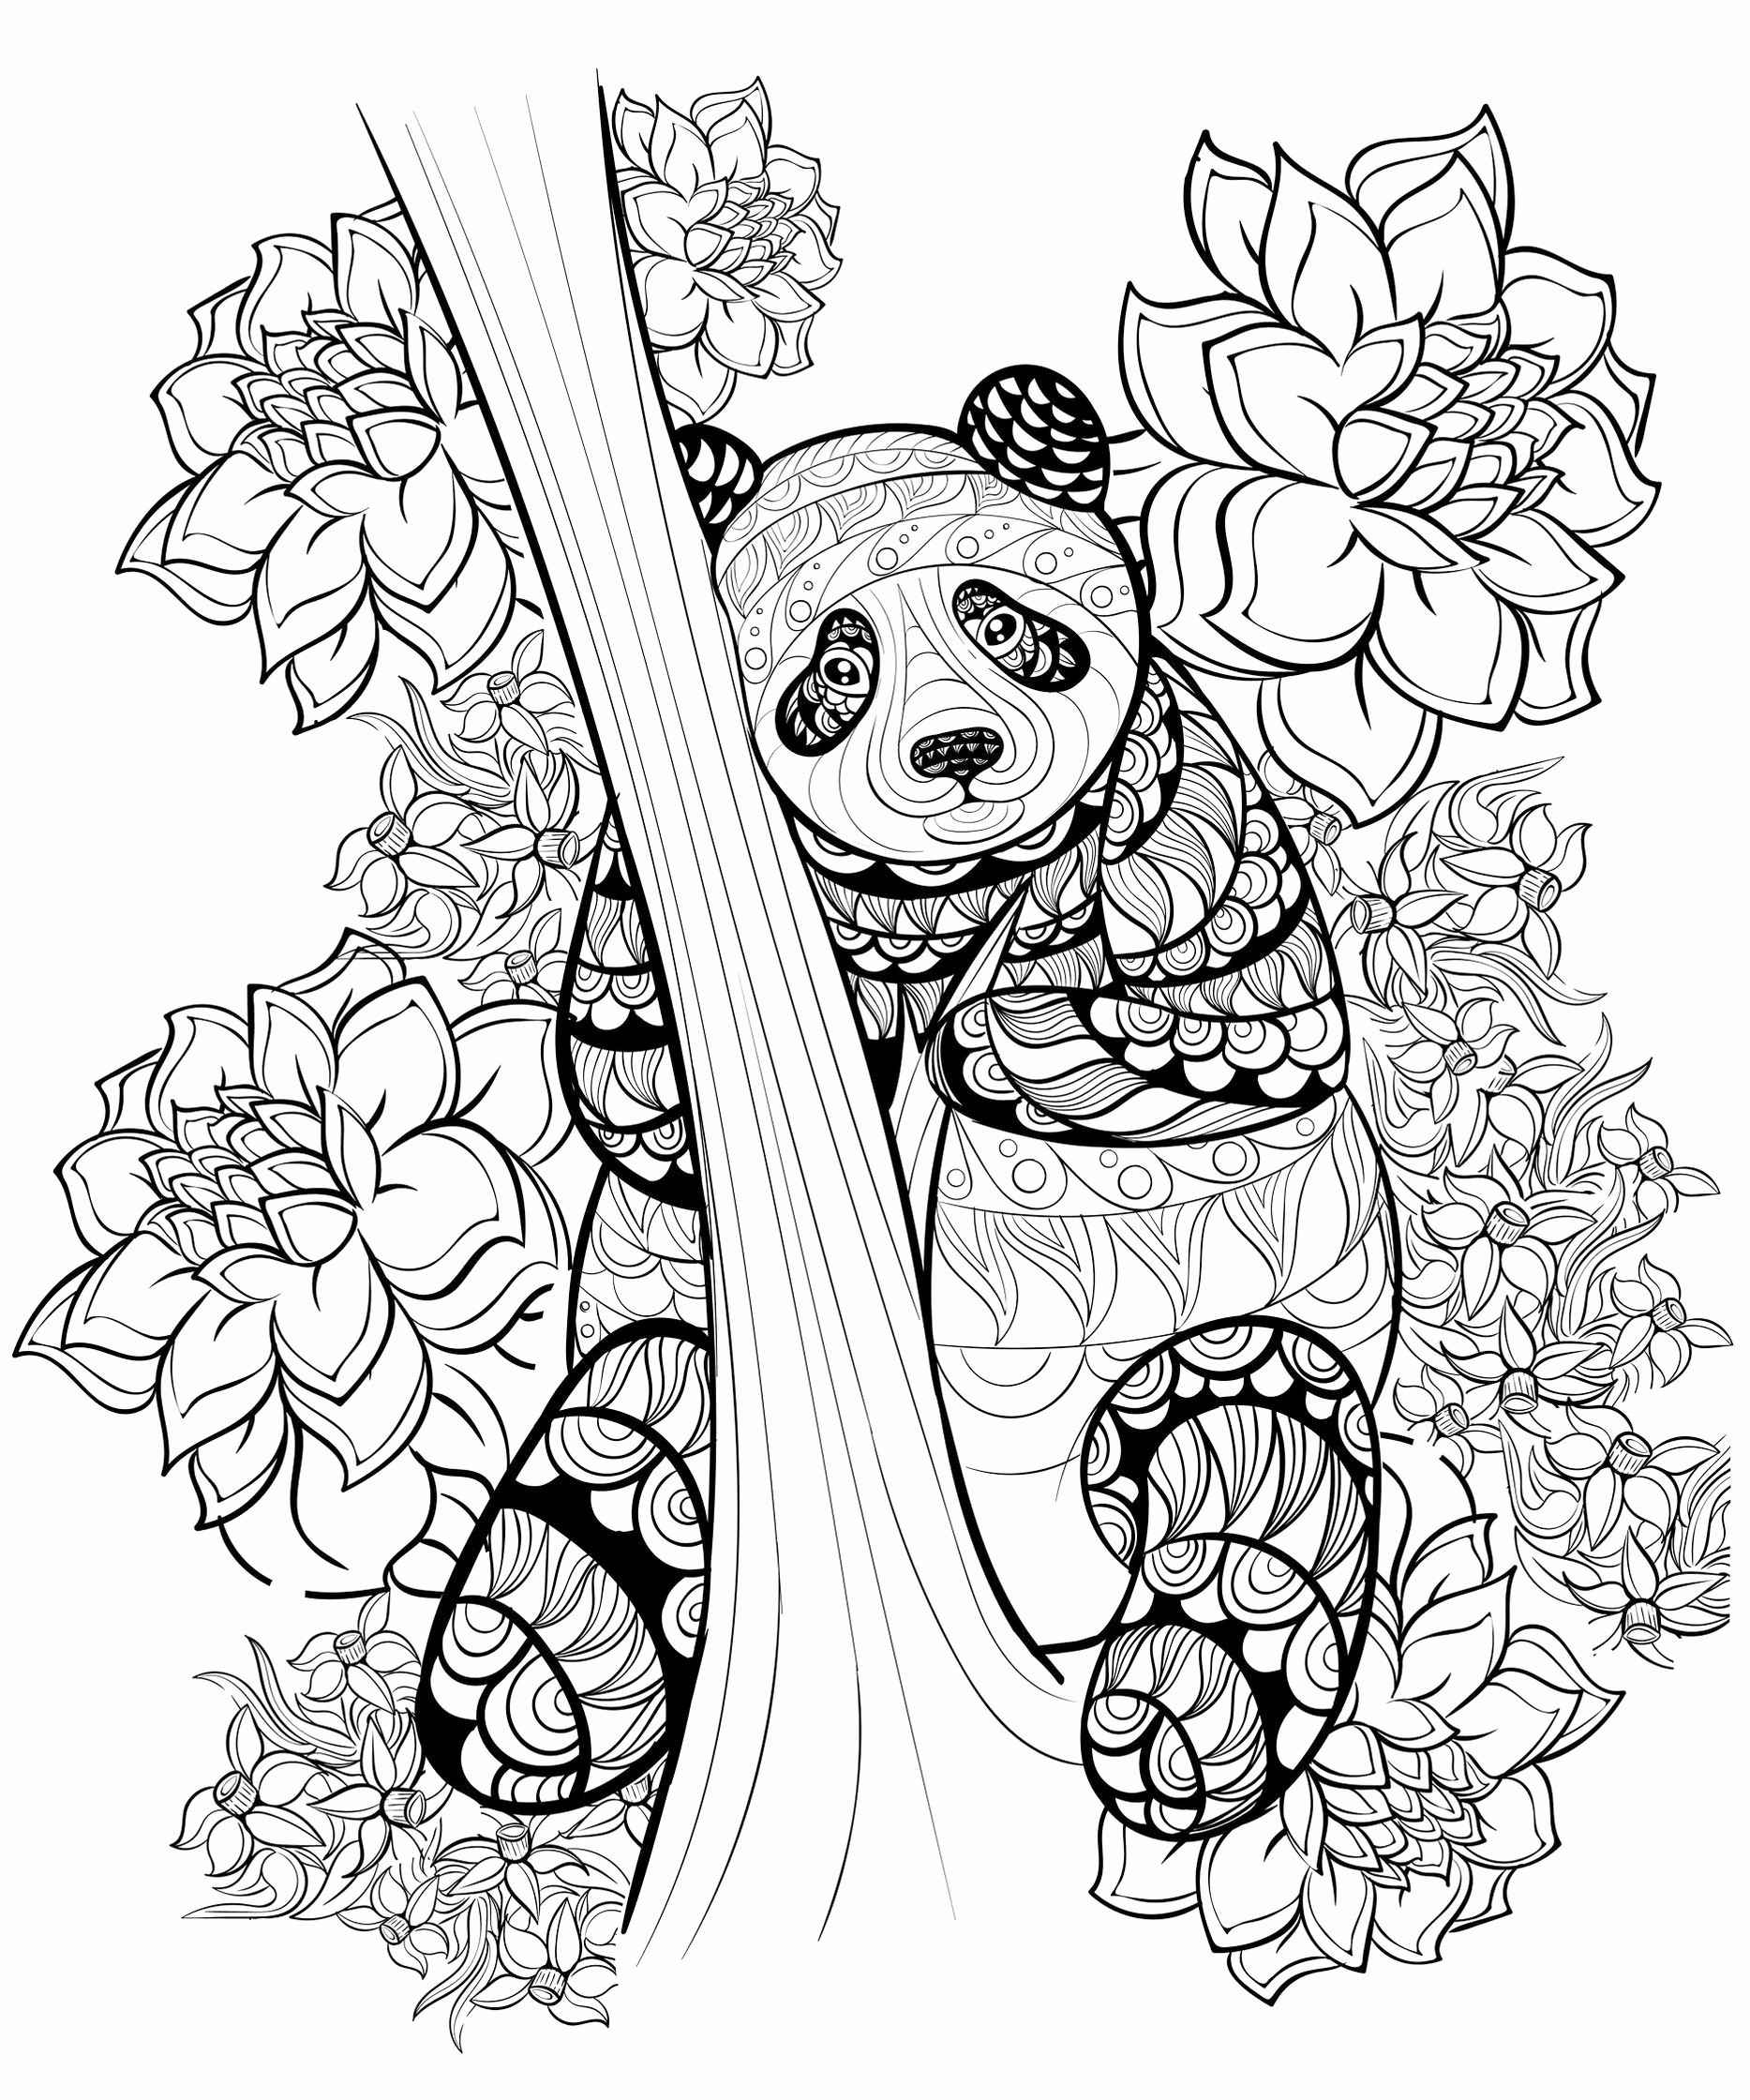 zentangle coloring pages free printable zentangle coloring pages printable at getcoloringscom pages coloring zentangle free printable